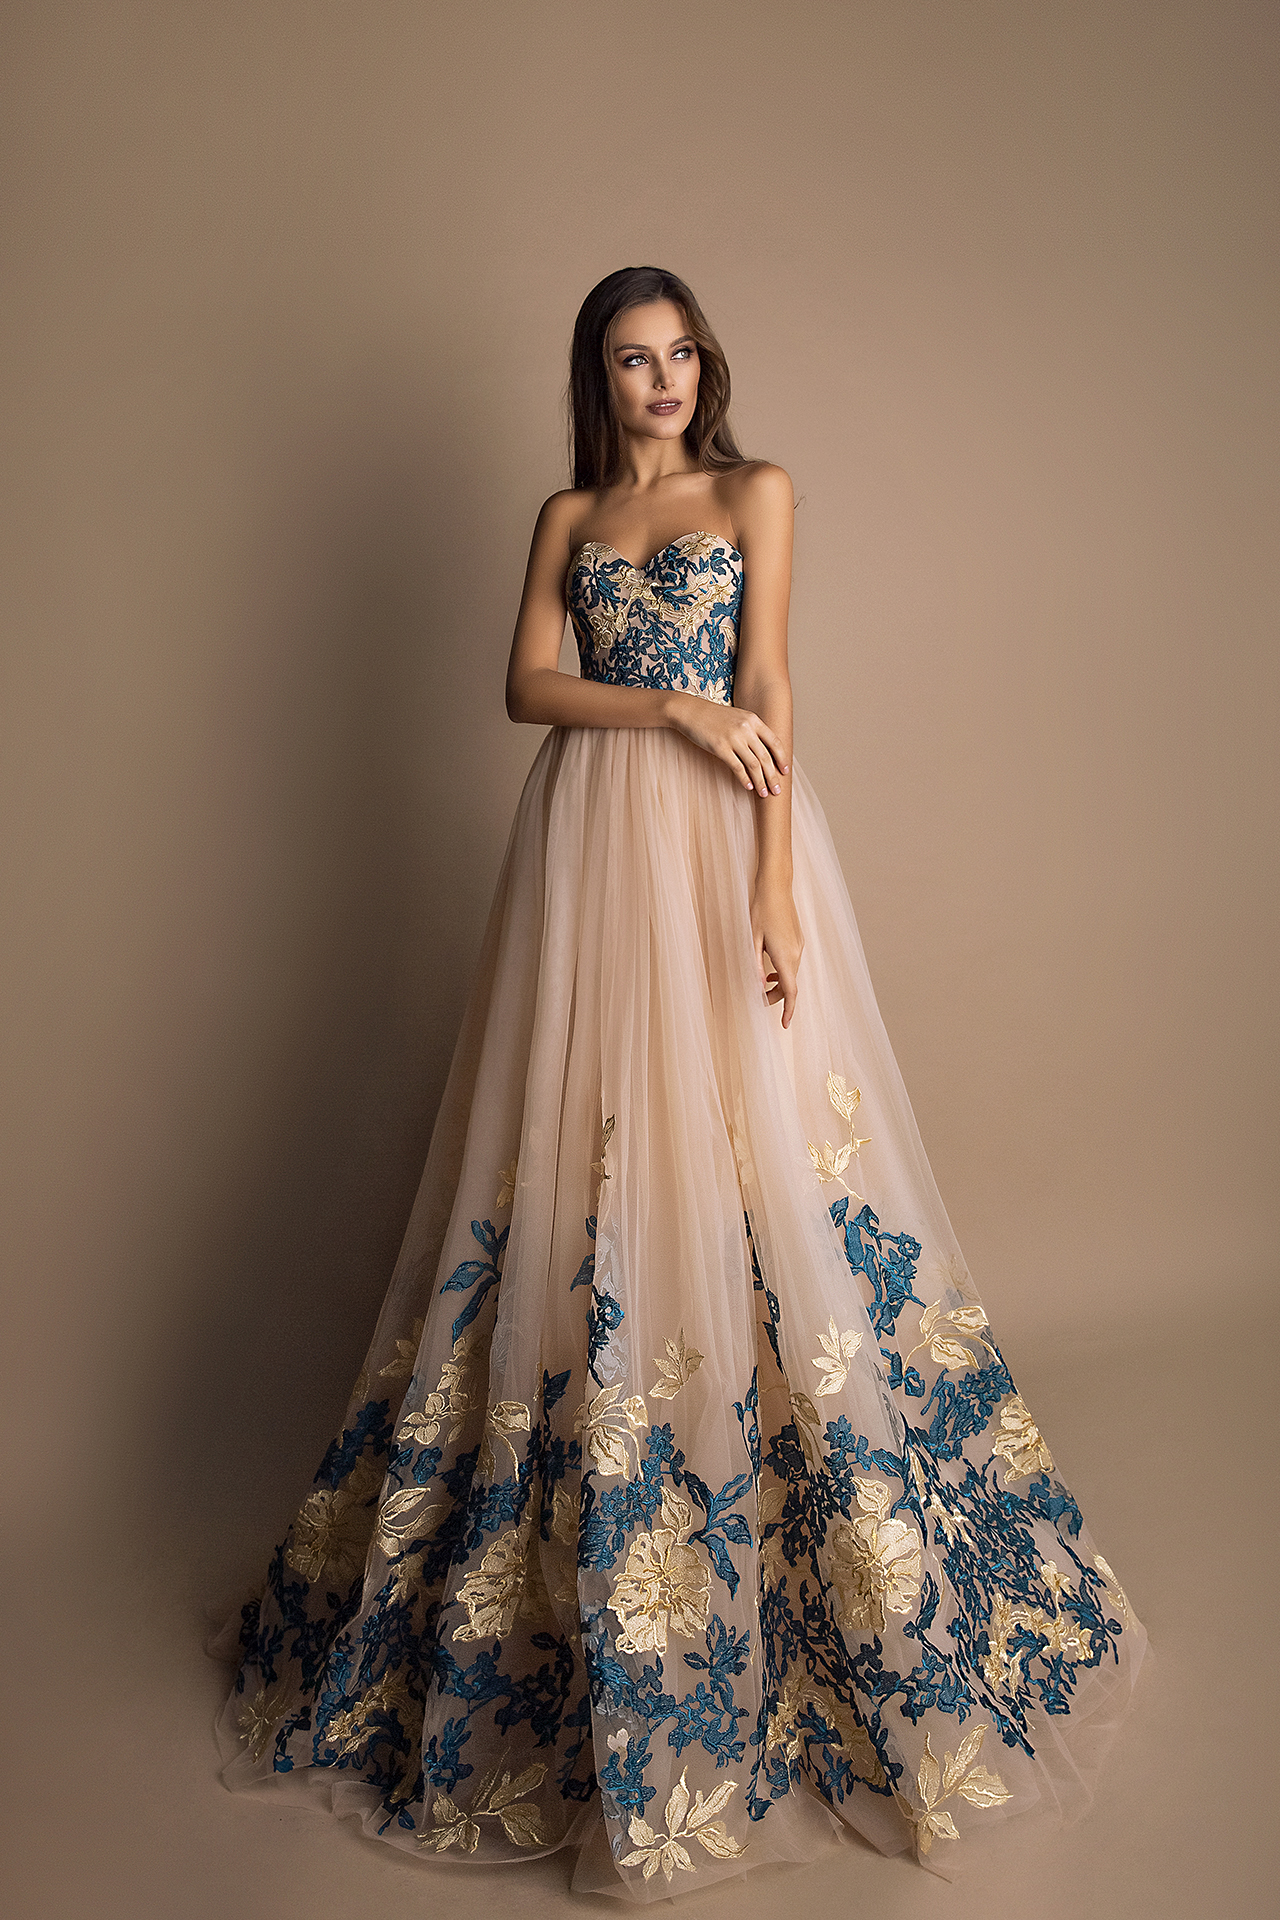 Evening Dresses 1592 Silhouette  A Line  Color  Blue  Ivory  Neckline  Sweetheart  Sleeves  Sleeveless  Train  No train